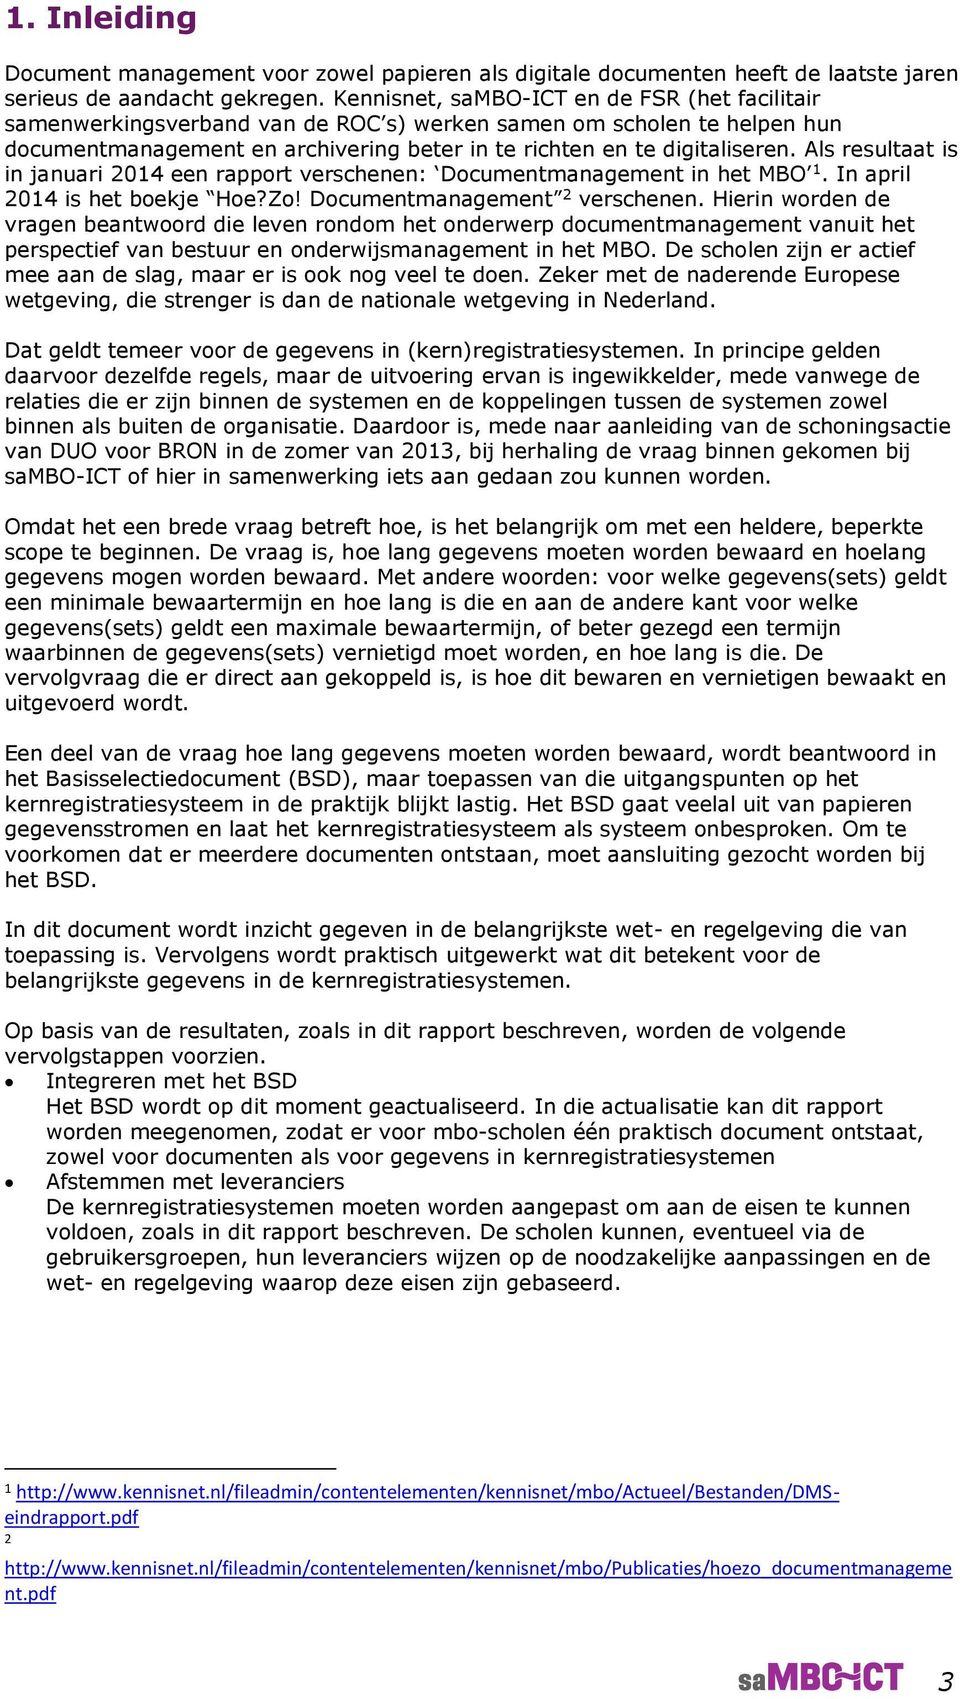 Als resultaat is in januari 2014 een rapport verschenen: Documentmanagement in het MBO 1. In april 2014 is het boekje Hoe?Zo! Documentmanagement 2 verschenen.